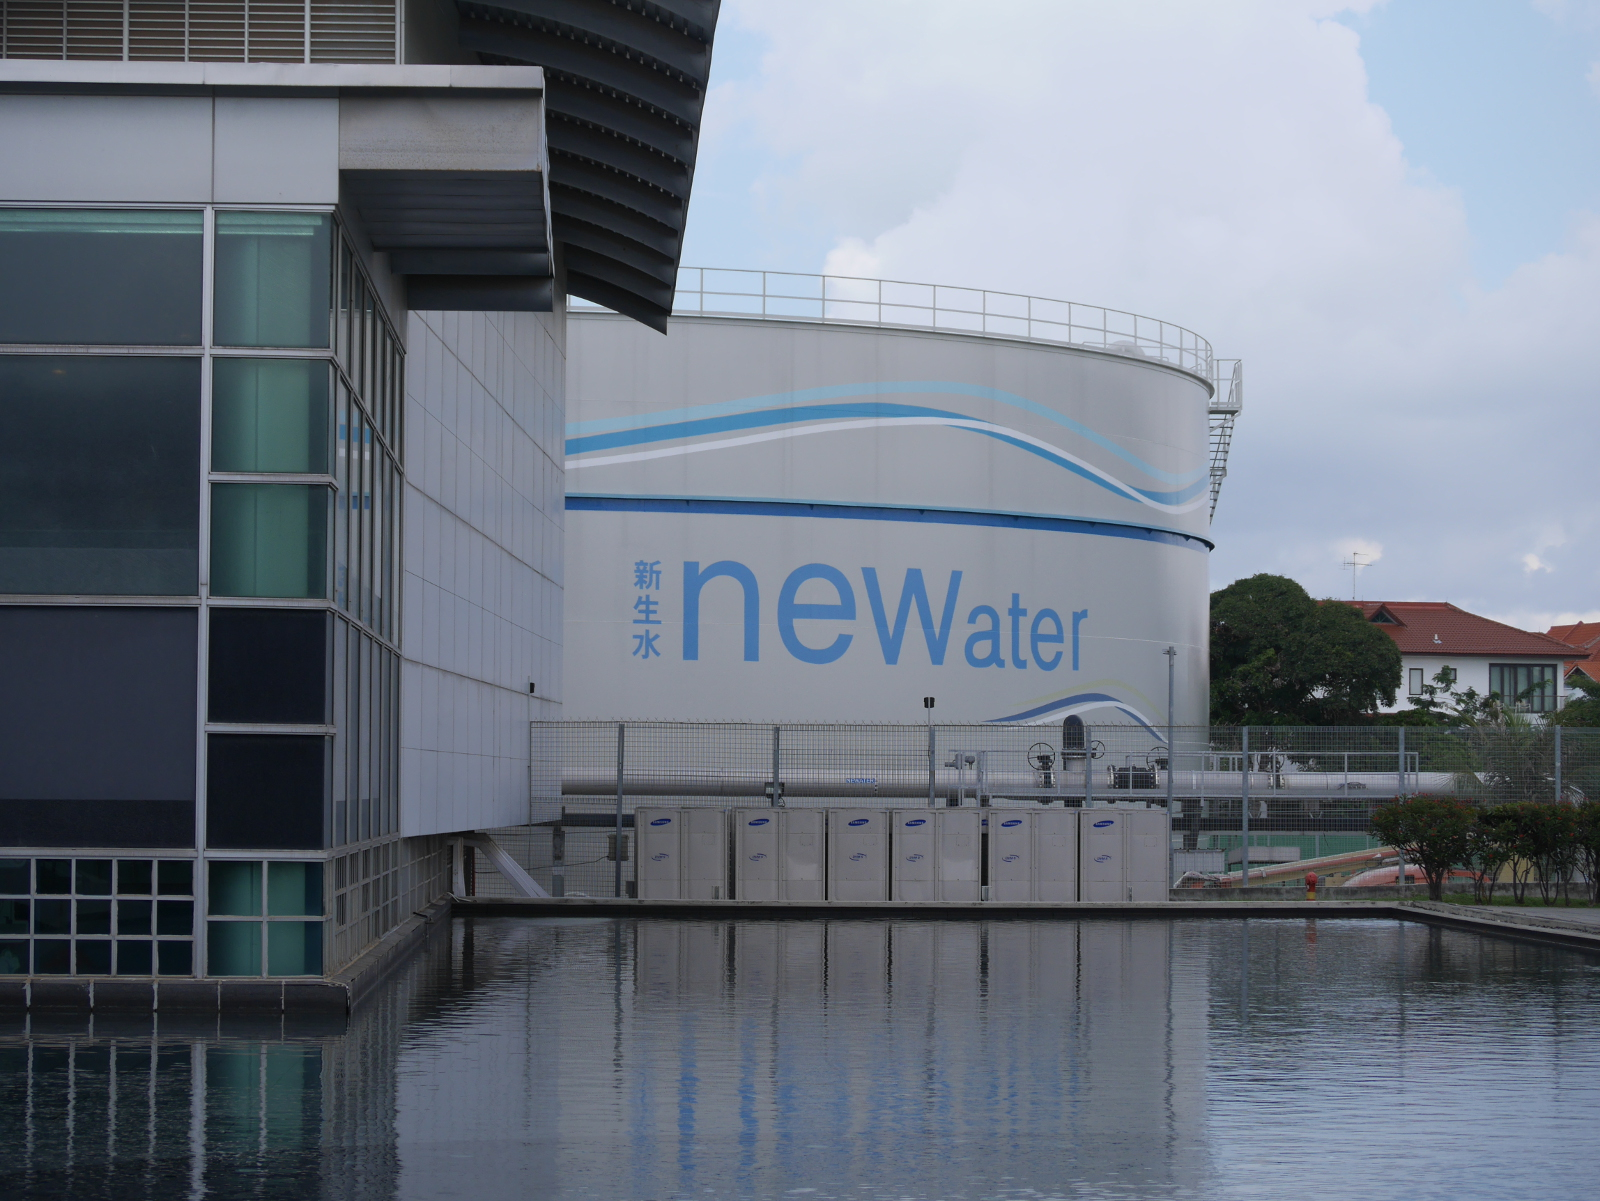 Tank at the Newater treatment plant with an integrated visitor center.